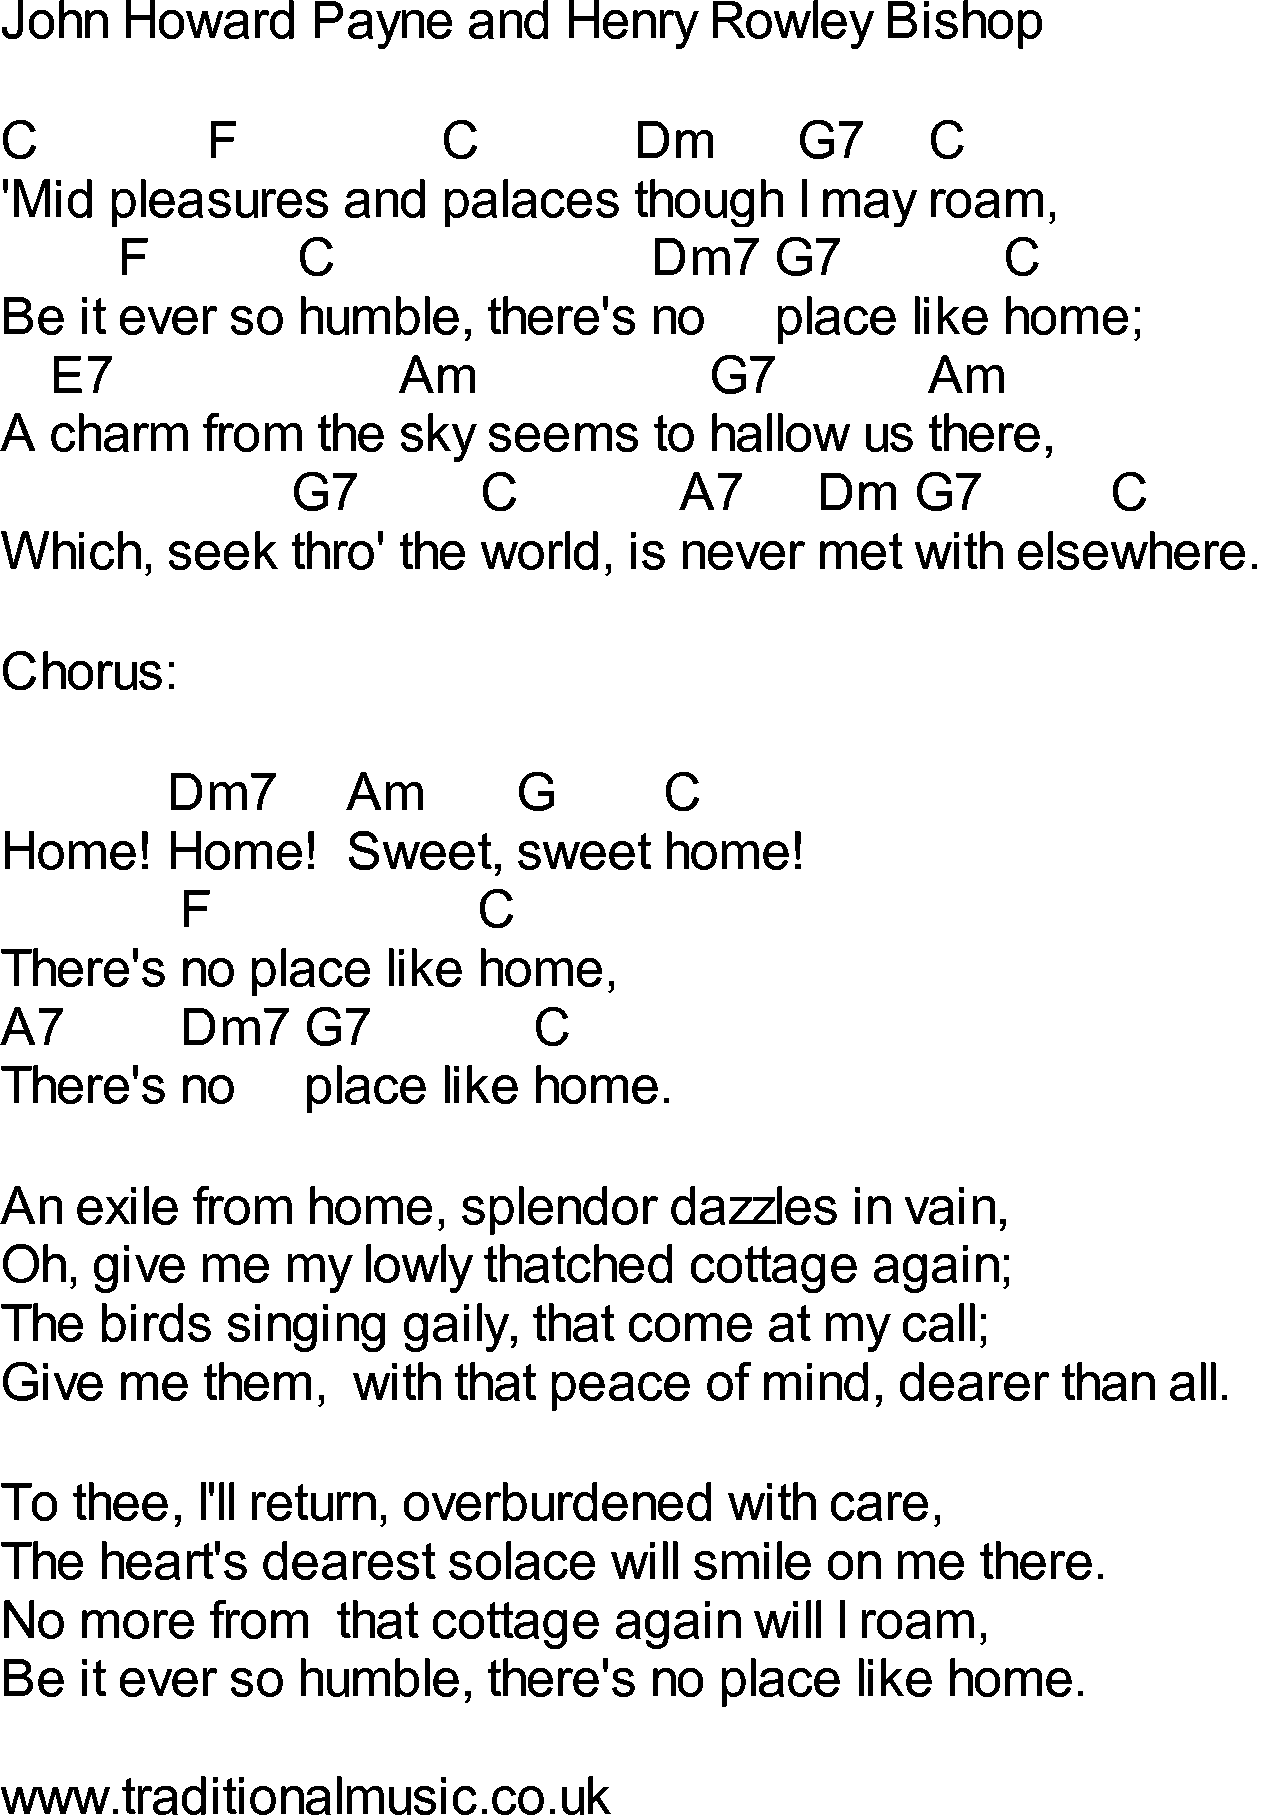 Bluegrass songs with chords  Home, Sweet Home